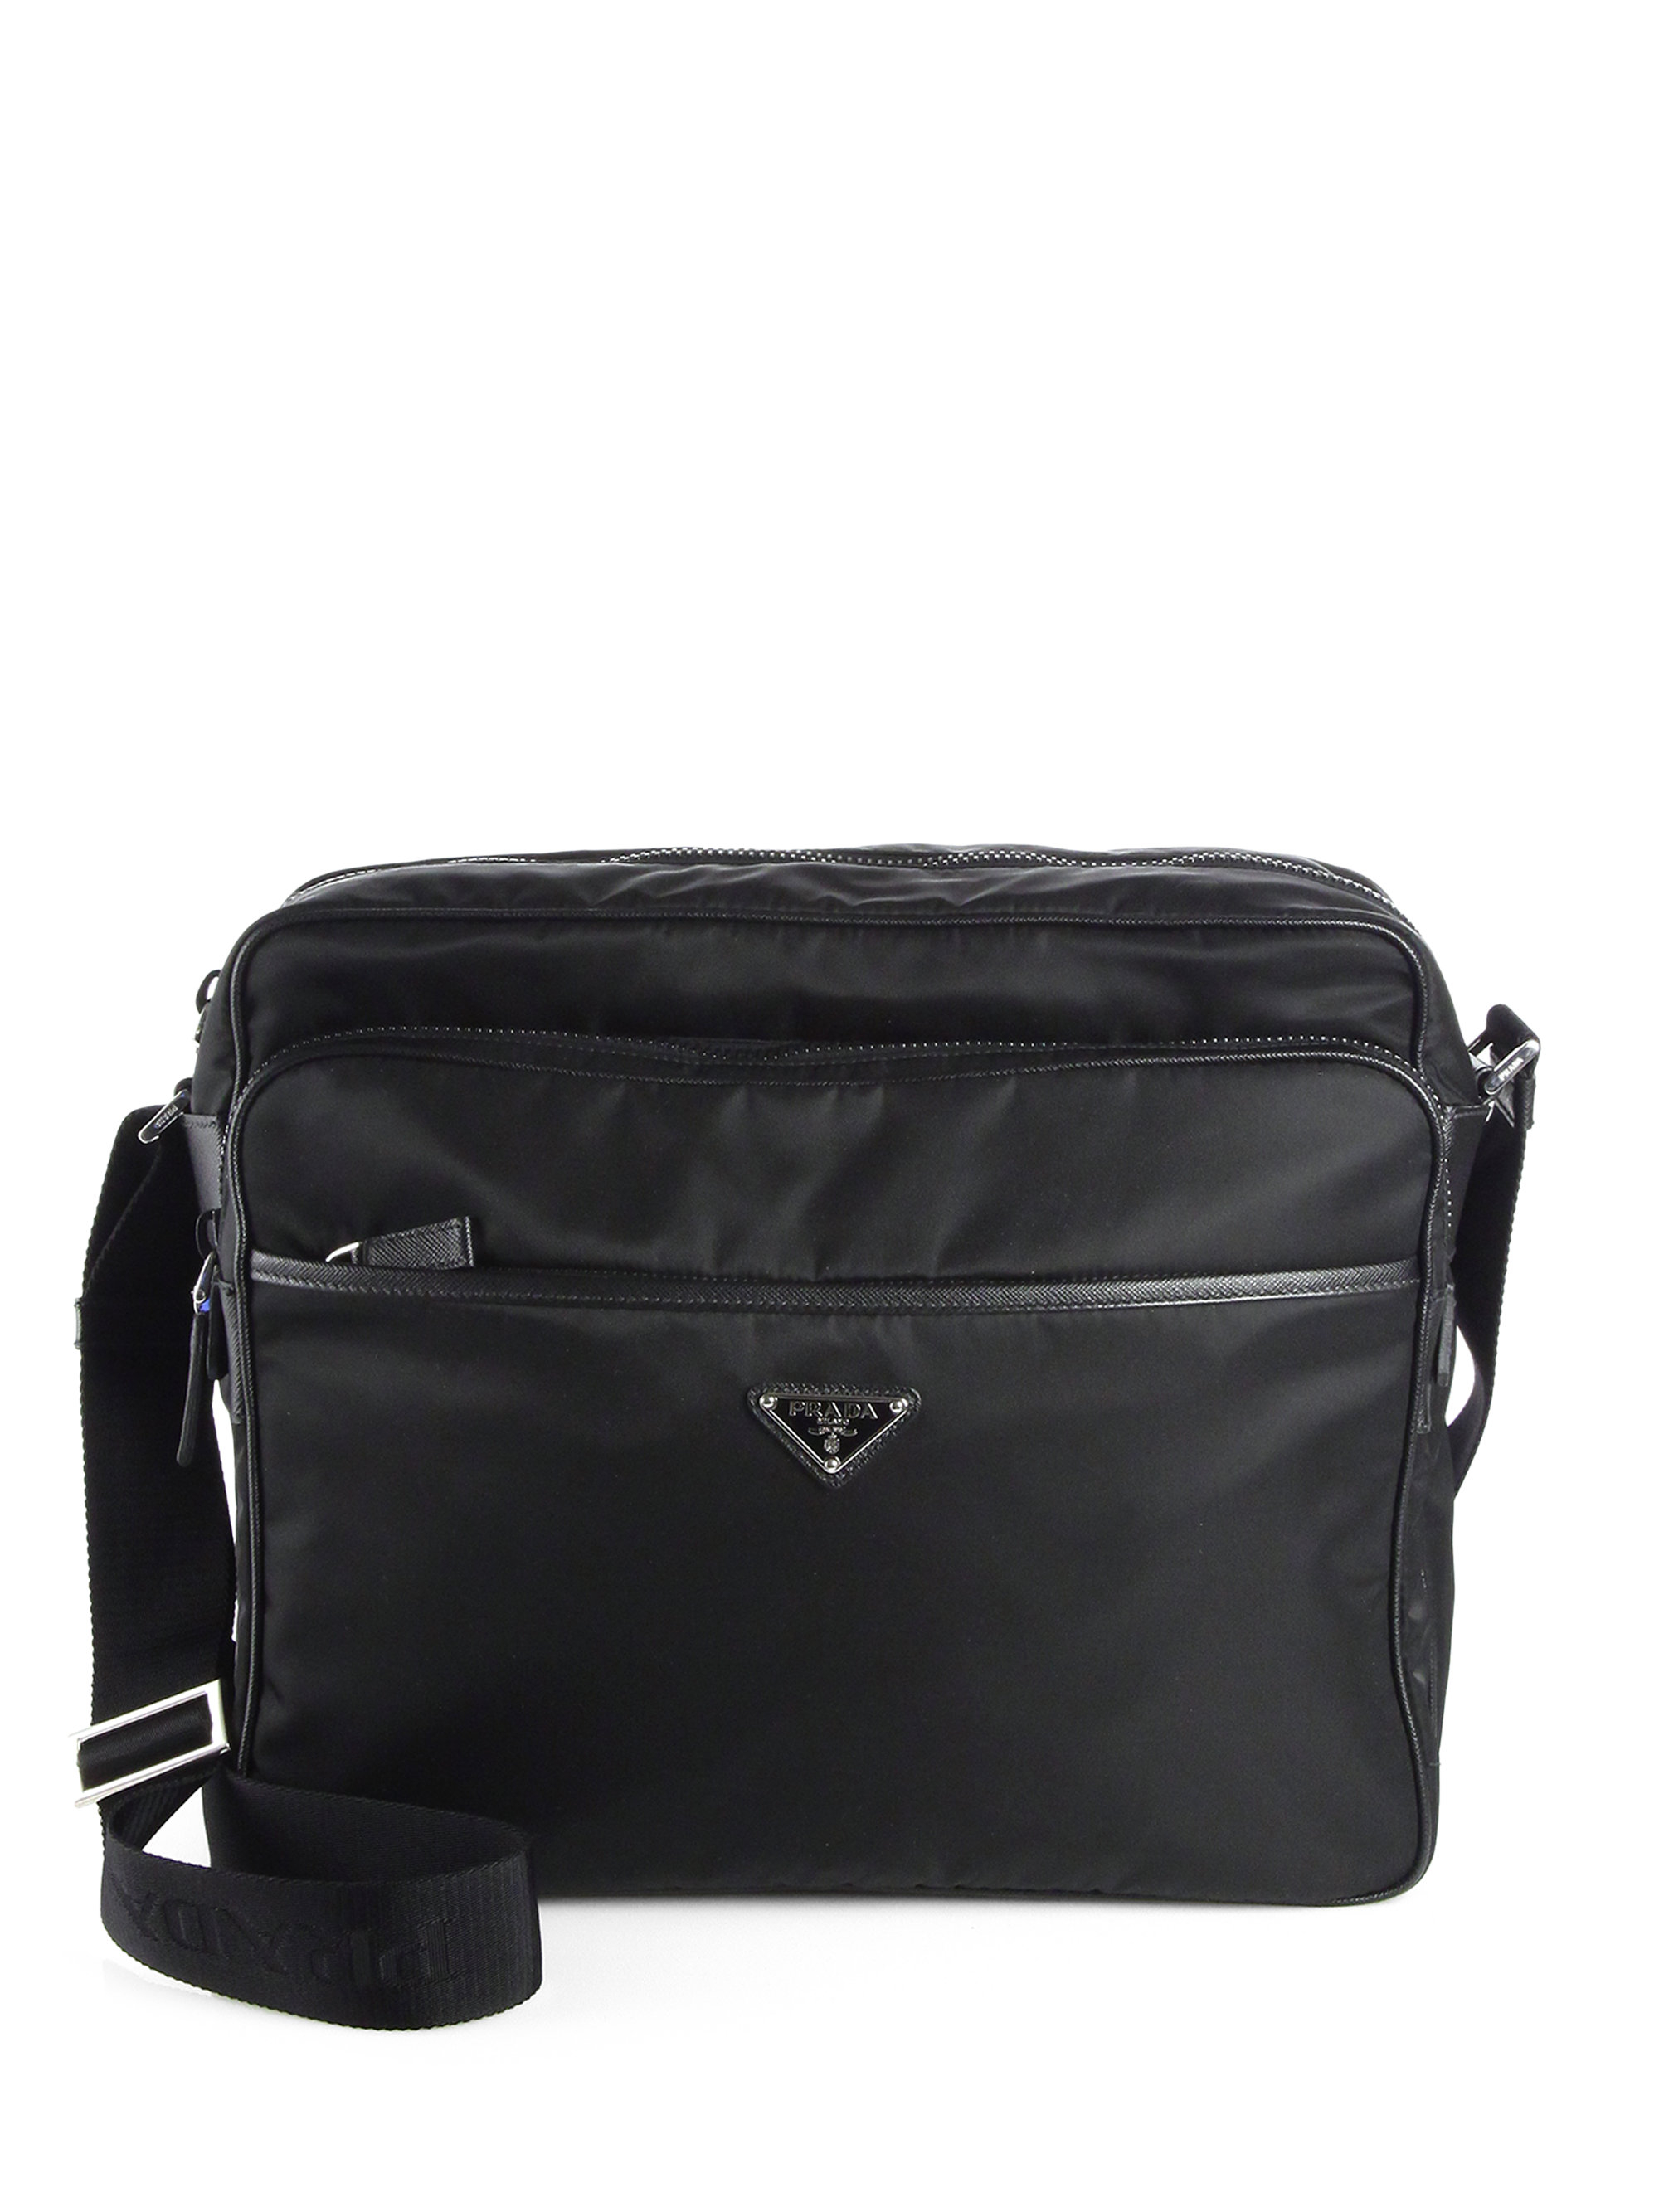 Nylon Messenger Bag Black 78